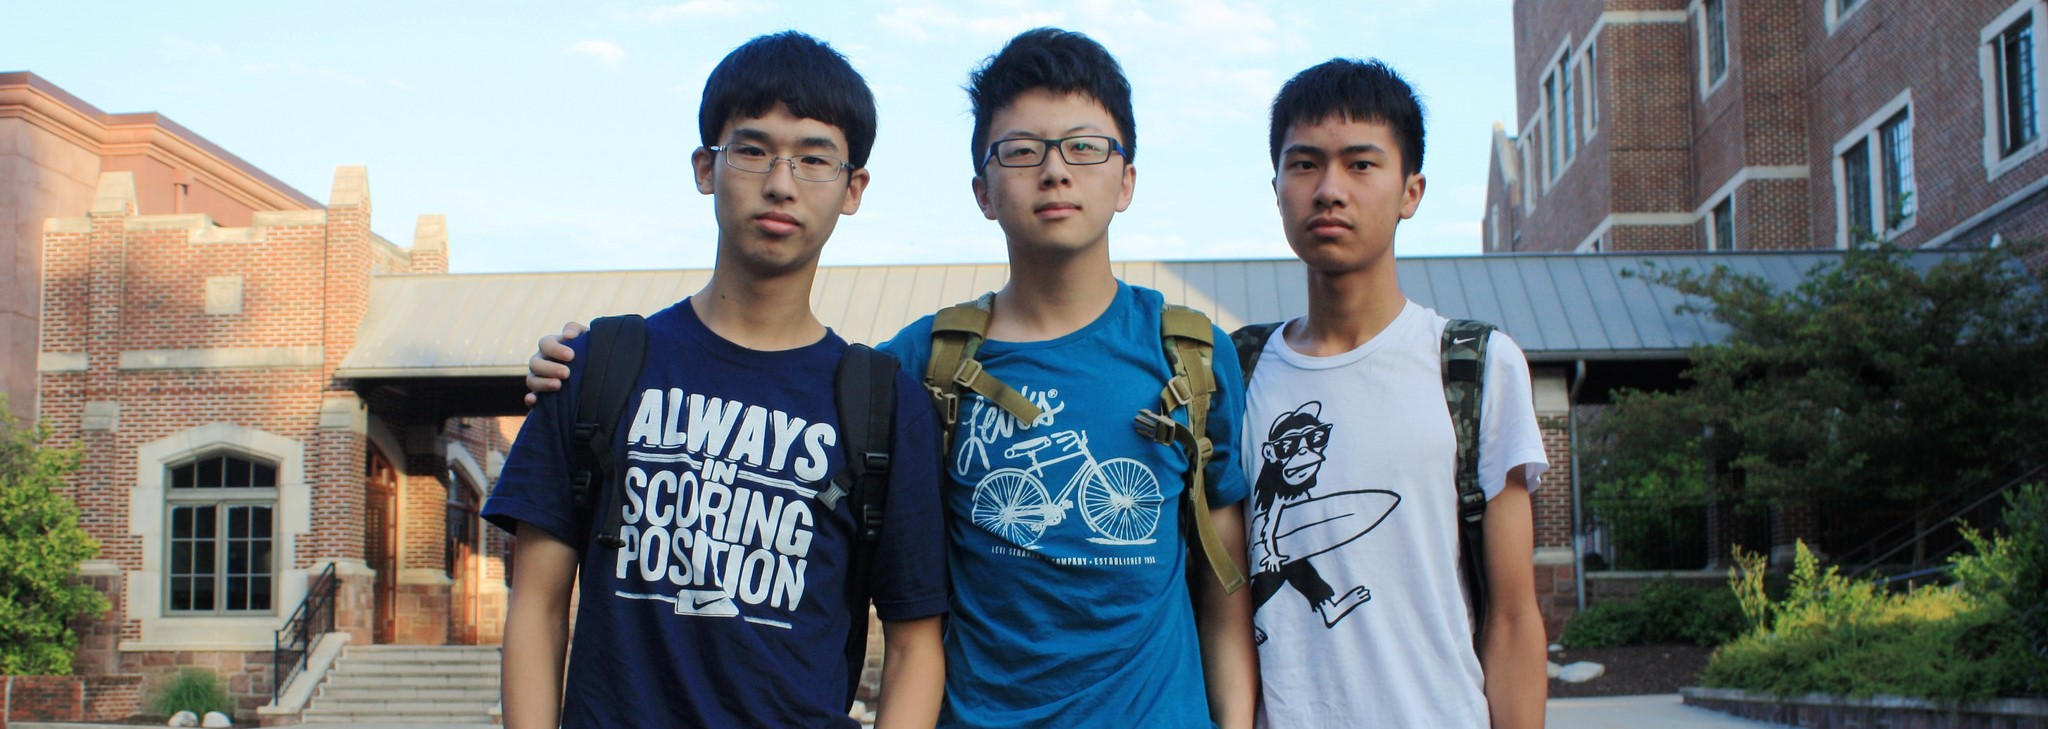 Chinese students at a summer program at the Hill School in Pottstown, Pennsylvania (Photo: Flickr/Montgomery County)